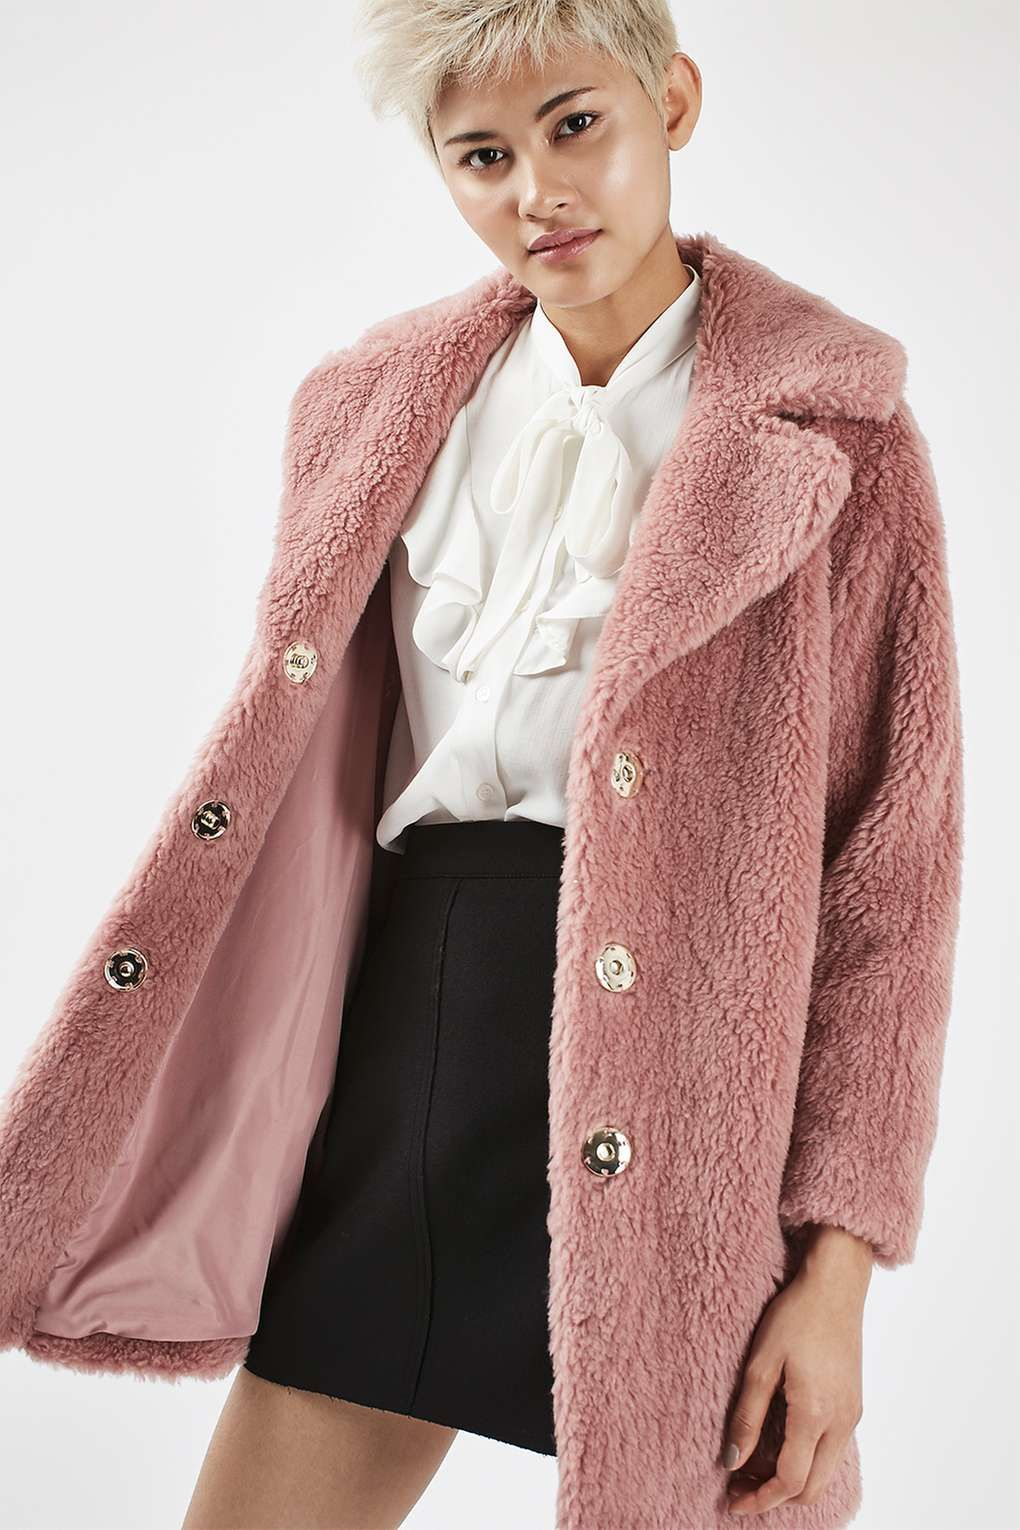 Pink Casual Faux Fur Coat - Jackets & Coats - Clothing - Topshop ...